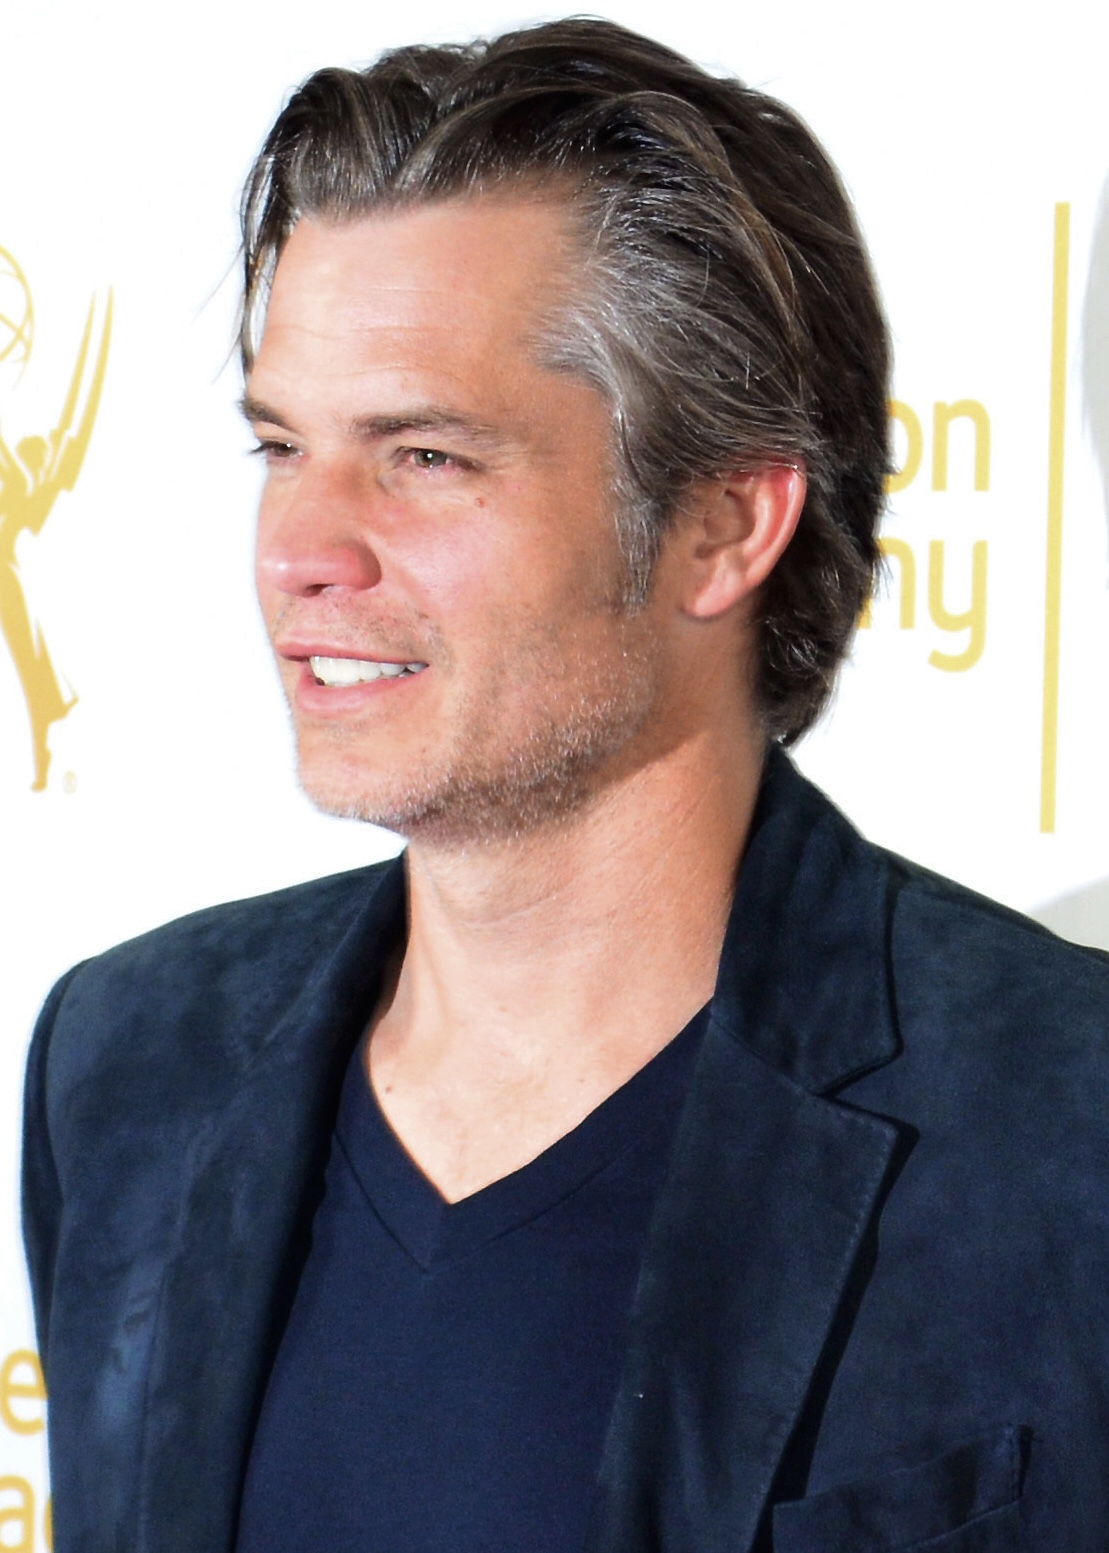 timothy olyphant billy bob thorntontimothy olyphant 2016, timothy olyphant height, timothy olyphant 2017, timothy olyphant young, timothy olyphant conan, timothy olyphant wiki, timothy olyphant twitter, timothy olyphant jimmy fallon, timothy olyphant billy bob thornton, timothy olyphant josh duhamel, timothy olyphant scream 2, timothy olyphant mother, timothy olyphant imdb, timothy olyphant cinemorgue, timothy olyphant snowden, timothy olyphant bald, timothy olyphant news, timothy olyphant go, timothy olyphant salary, timothy olyphant brother